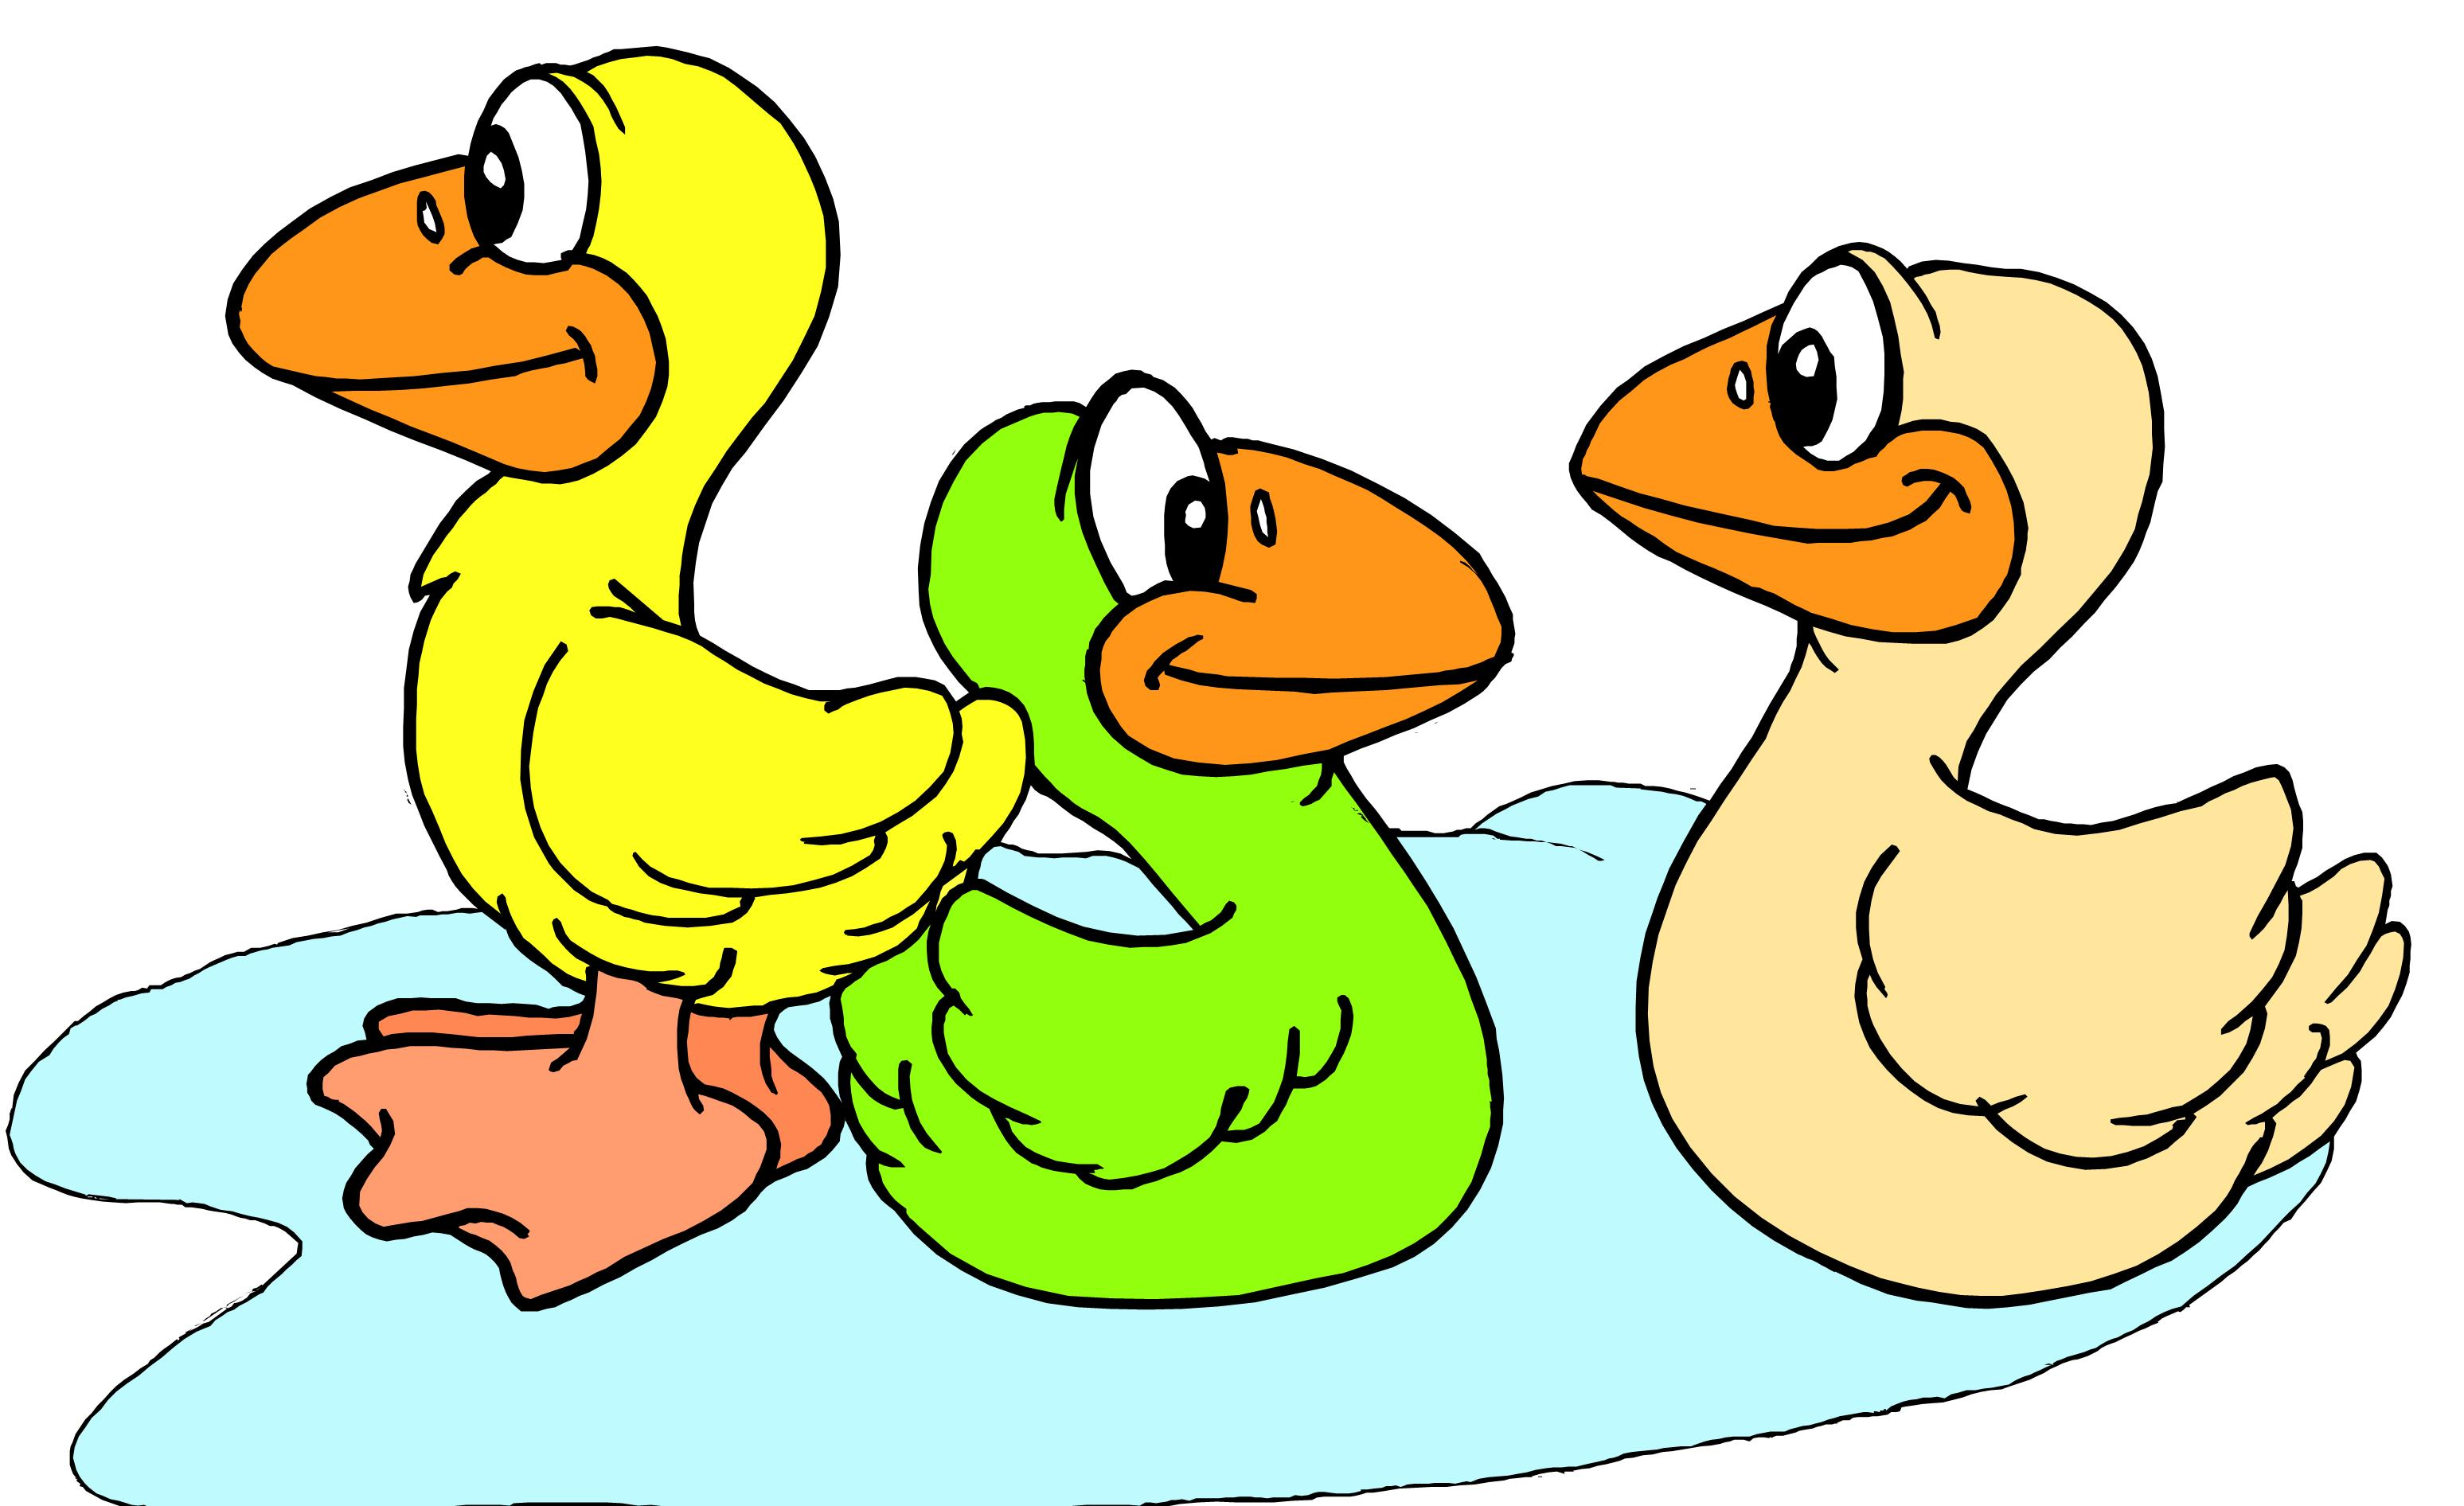 Hook duck race clipart 20 free Cliparts | Download images ... (3095 x 1892 Pixel)